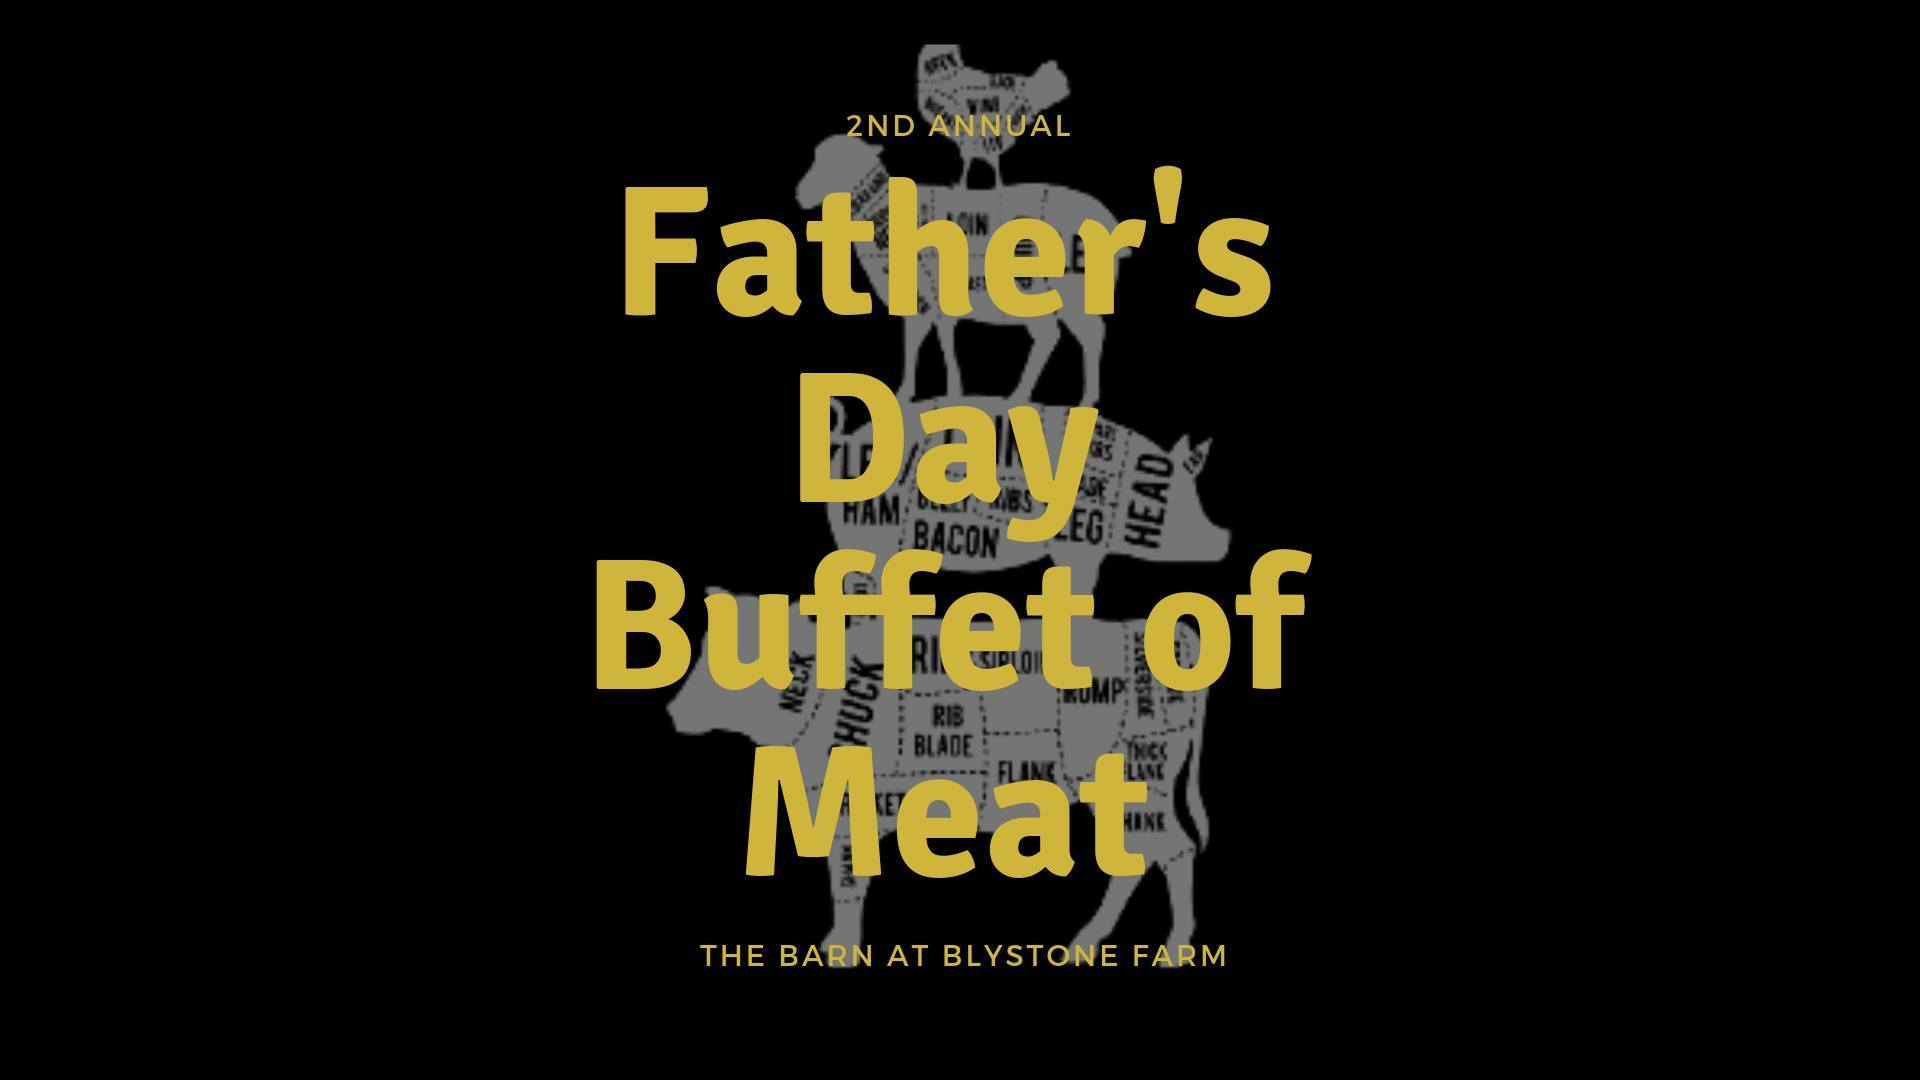 Father's Day Buffet of Meat